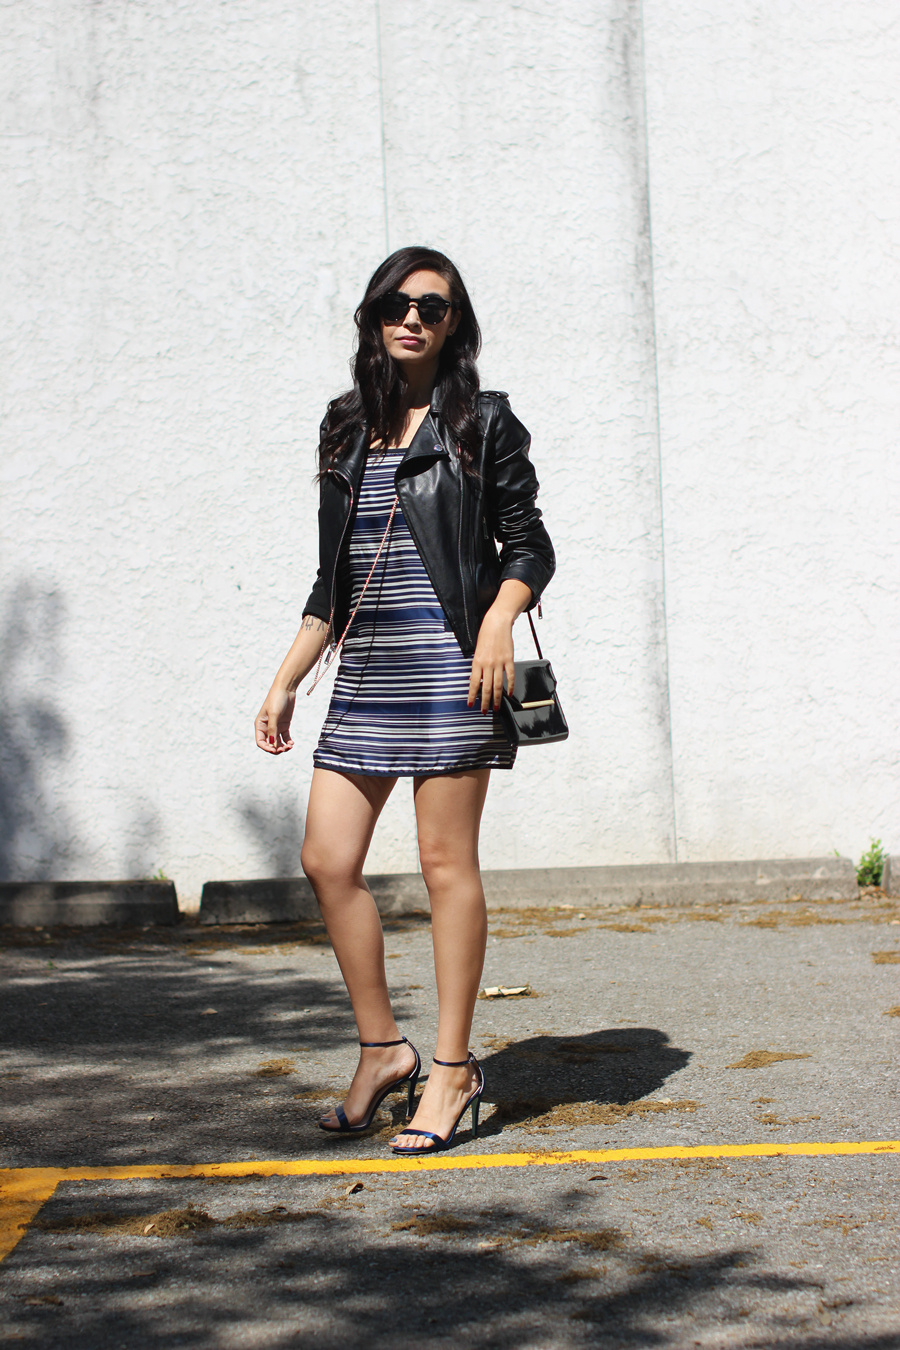 FTT-STRIPED-DRESS-LEATHER-JACKET-BCBG-AUSTIN-BLOGGER-11